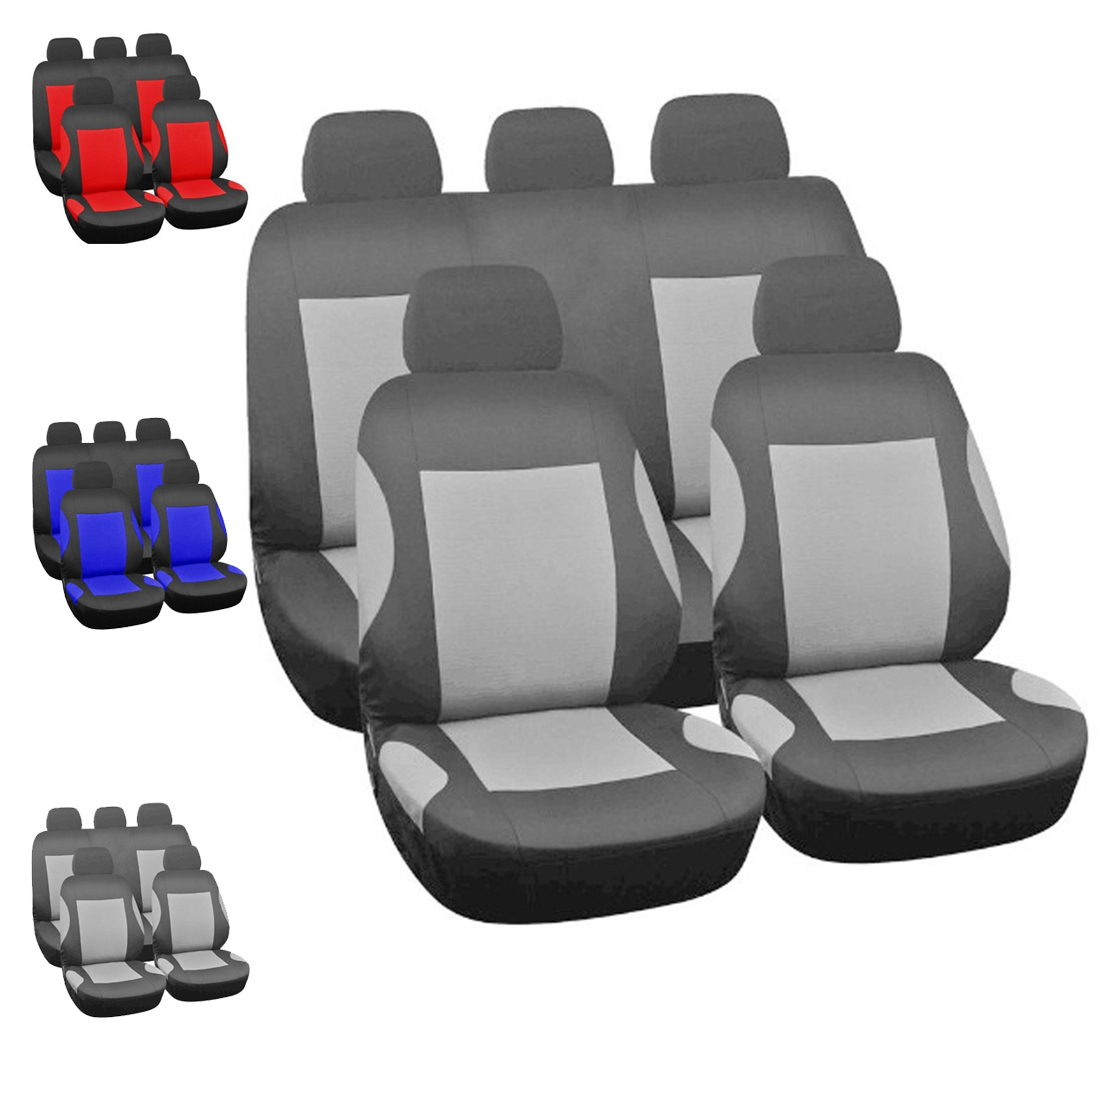 Dewtreetali Universal Full Seat Automoblies Seat Cover Polyester Car Seat Covers Protector Blue Gray font b